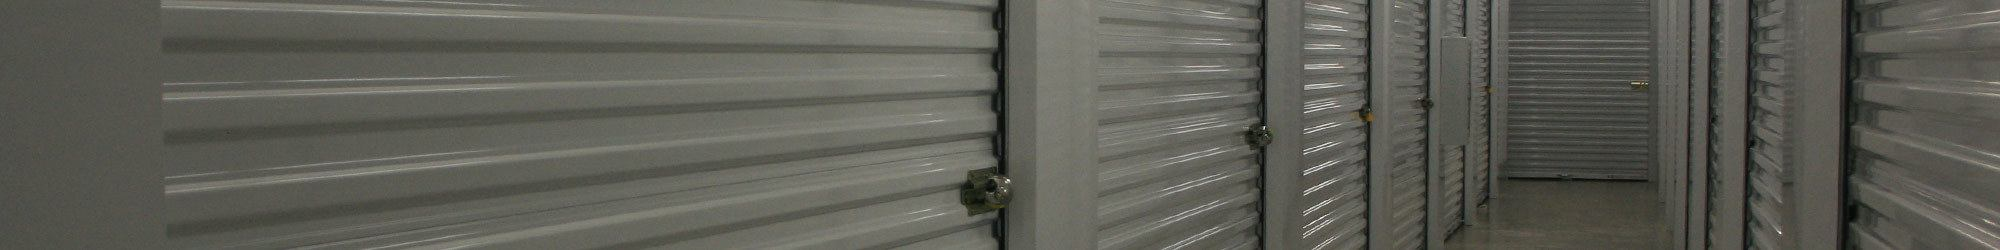 RV & Boat Storage at Space Shop Self Storage in Roswell